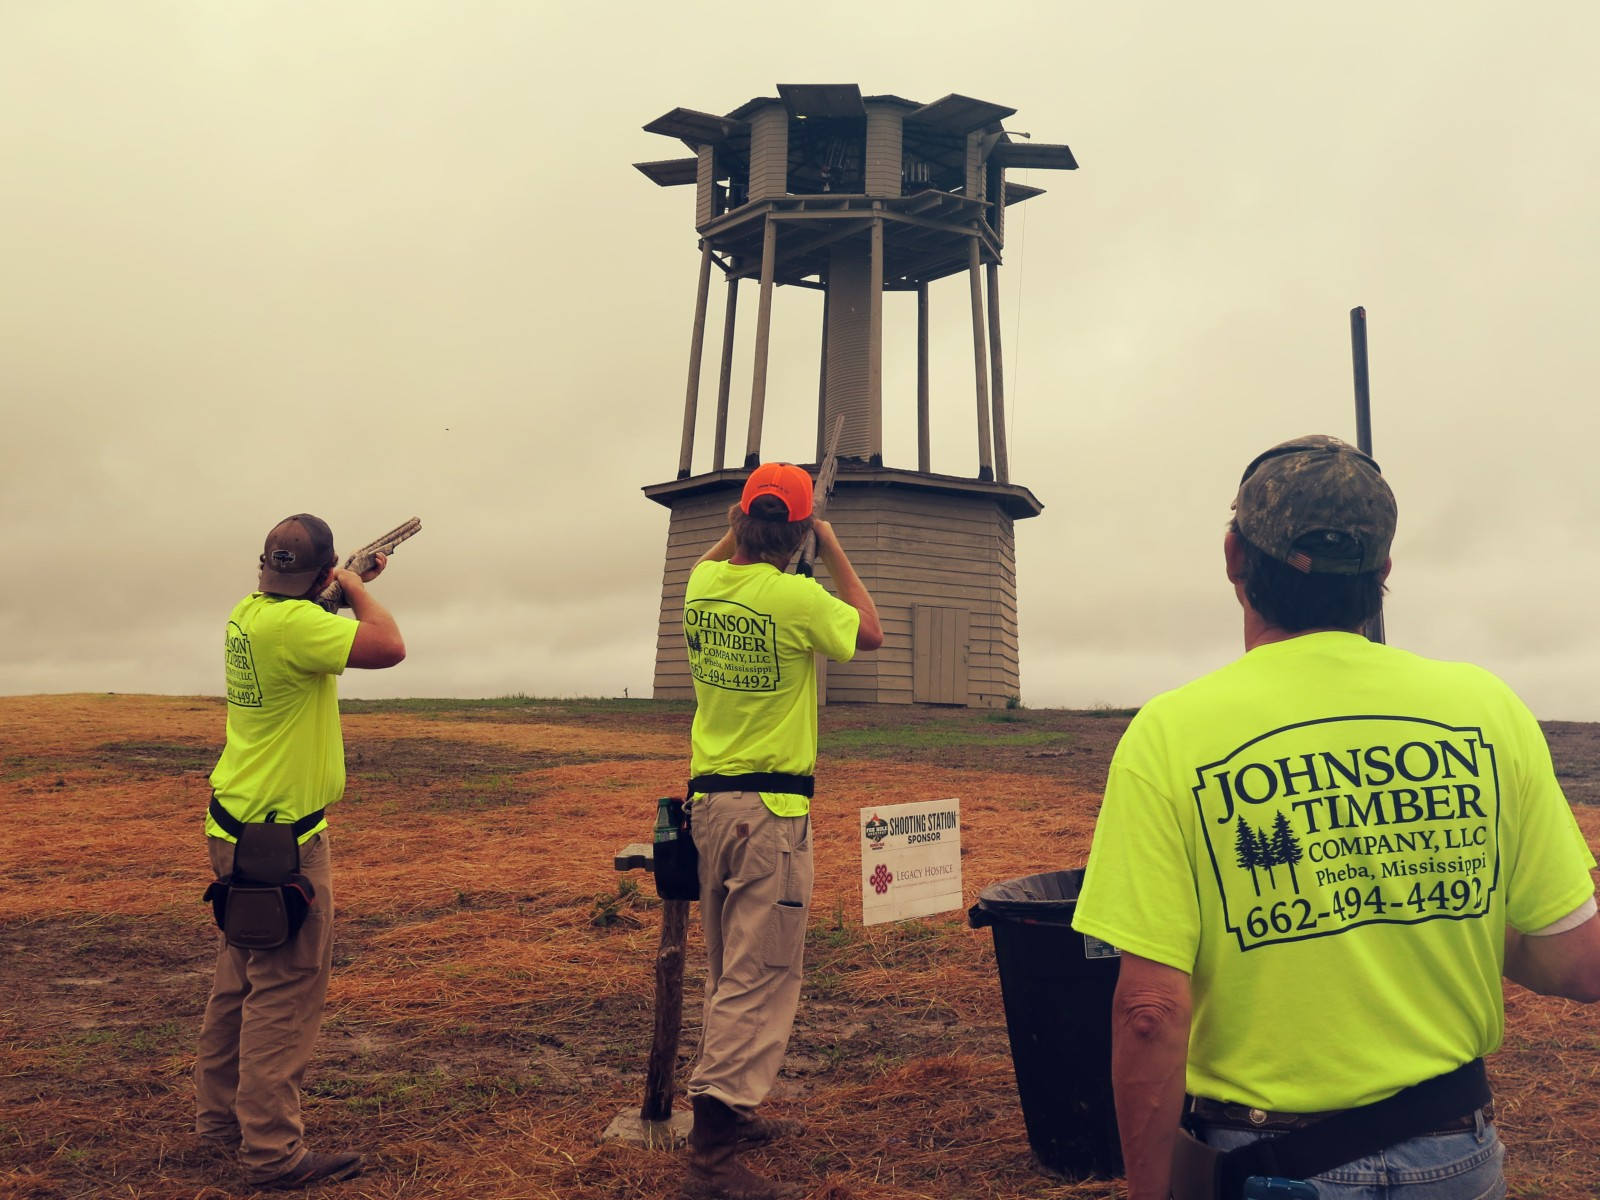 tower shoot at sporting clays